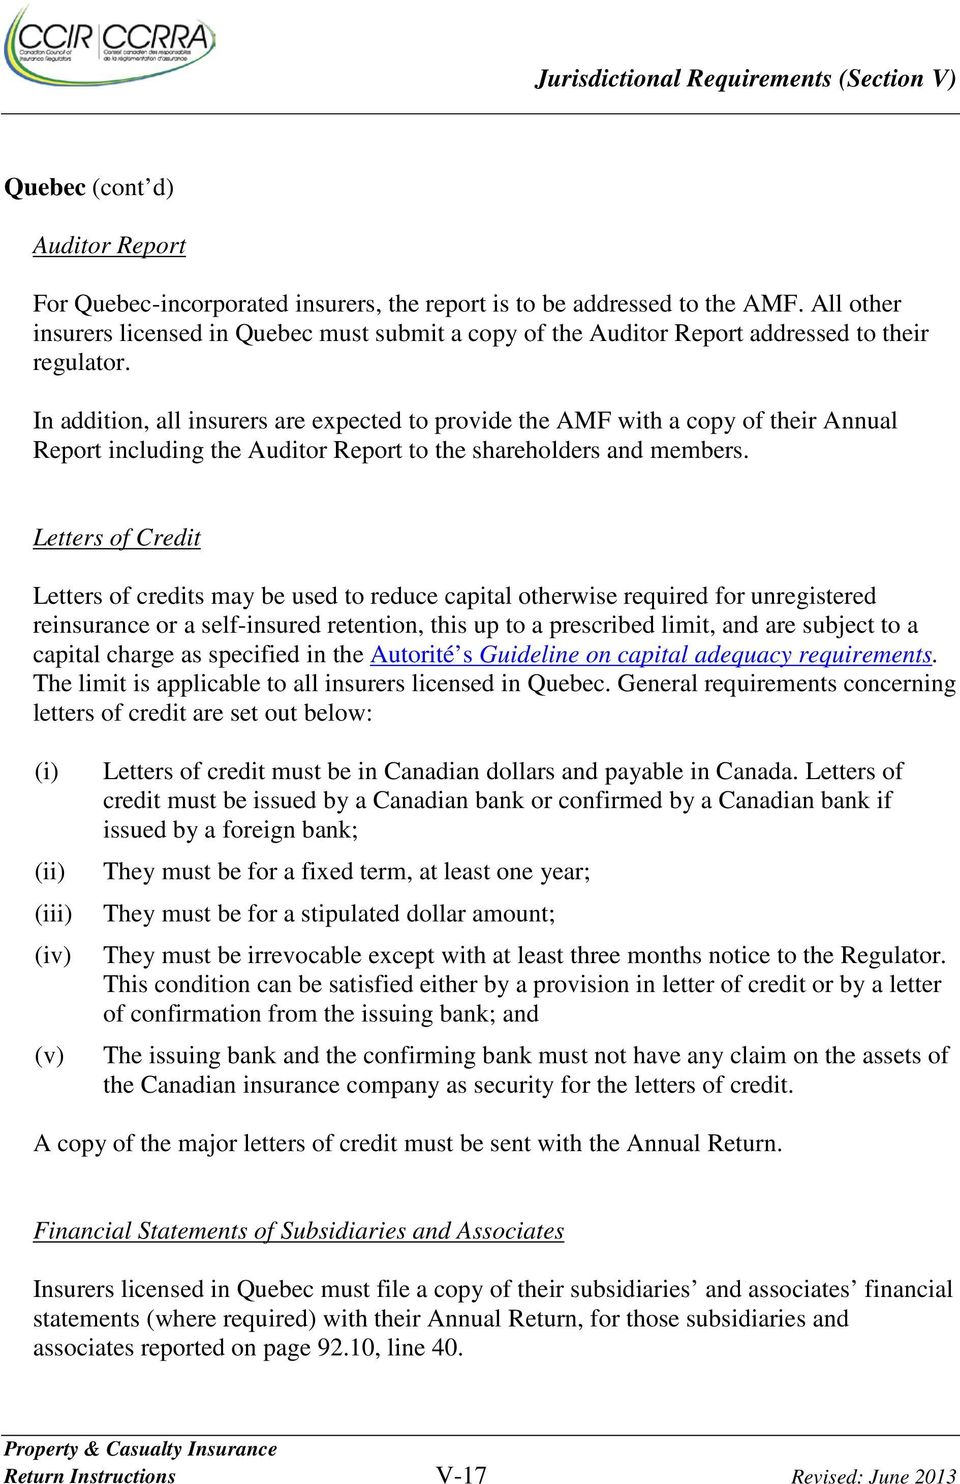 In addition, all insurers are expected to provide the AMF with a copy of their Annual Report including the Auditor Report to the shareholders and members.